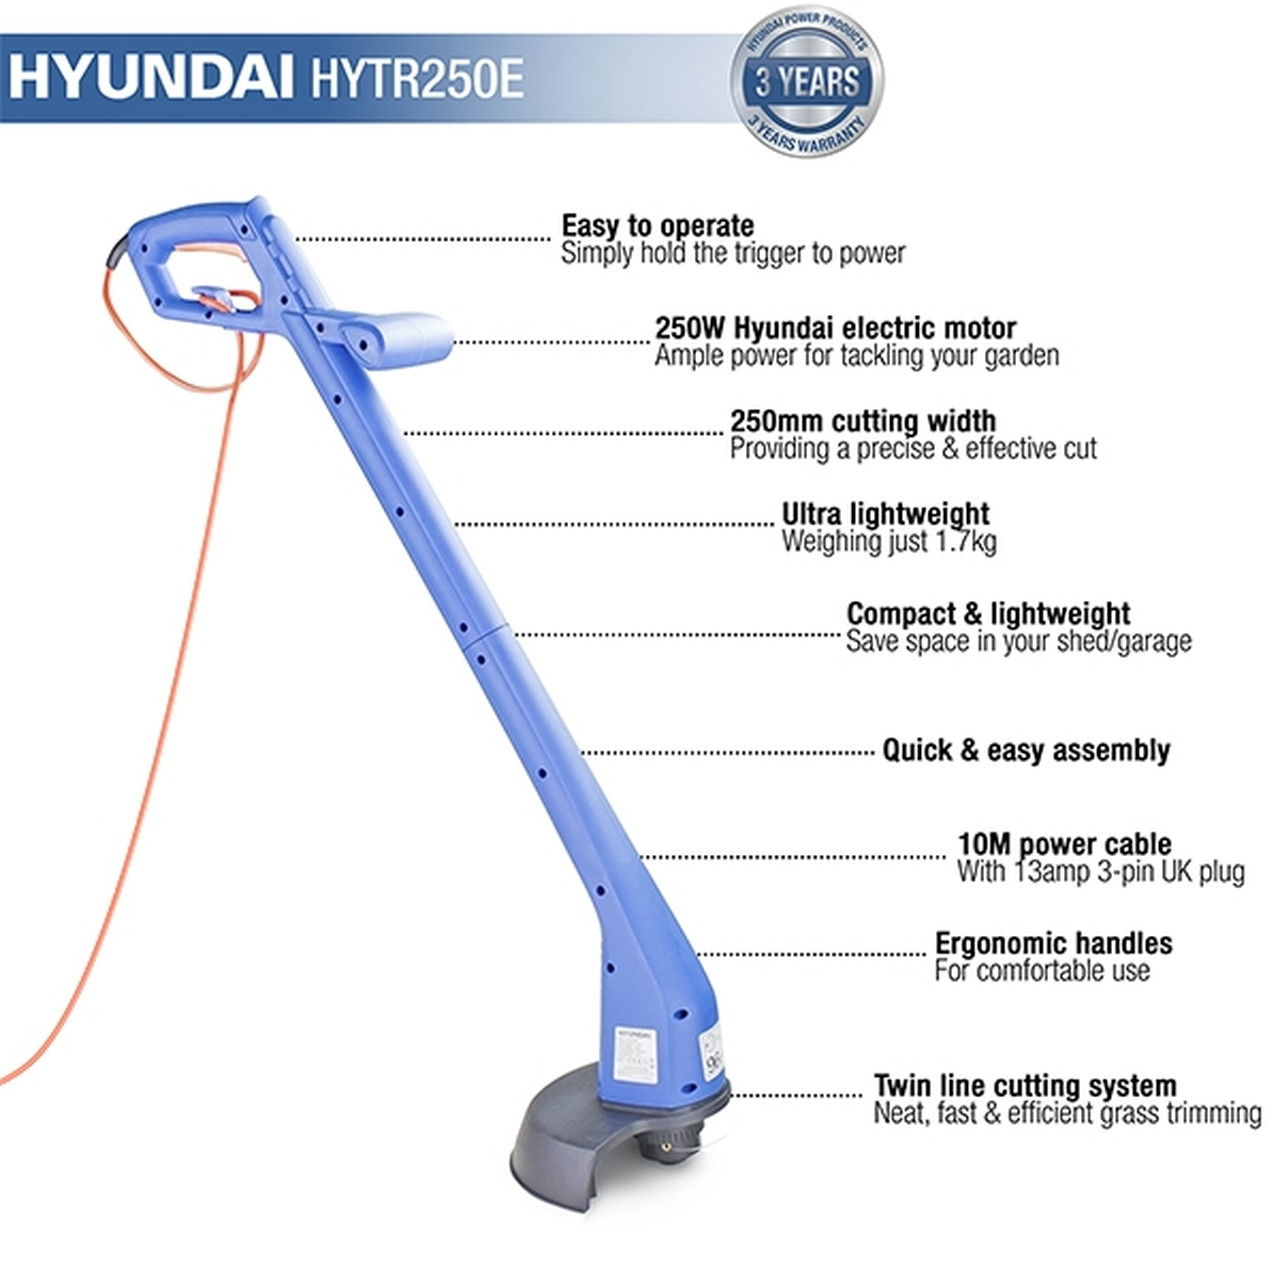 Low-Cost Grass Trimmer for Small to Medium-Sized Gardens The HYTR250E electric strimmer